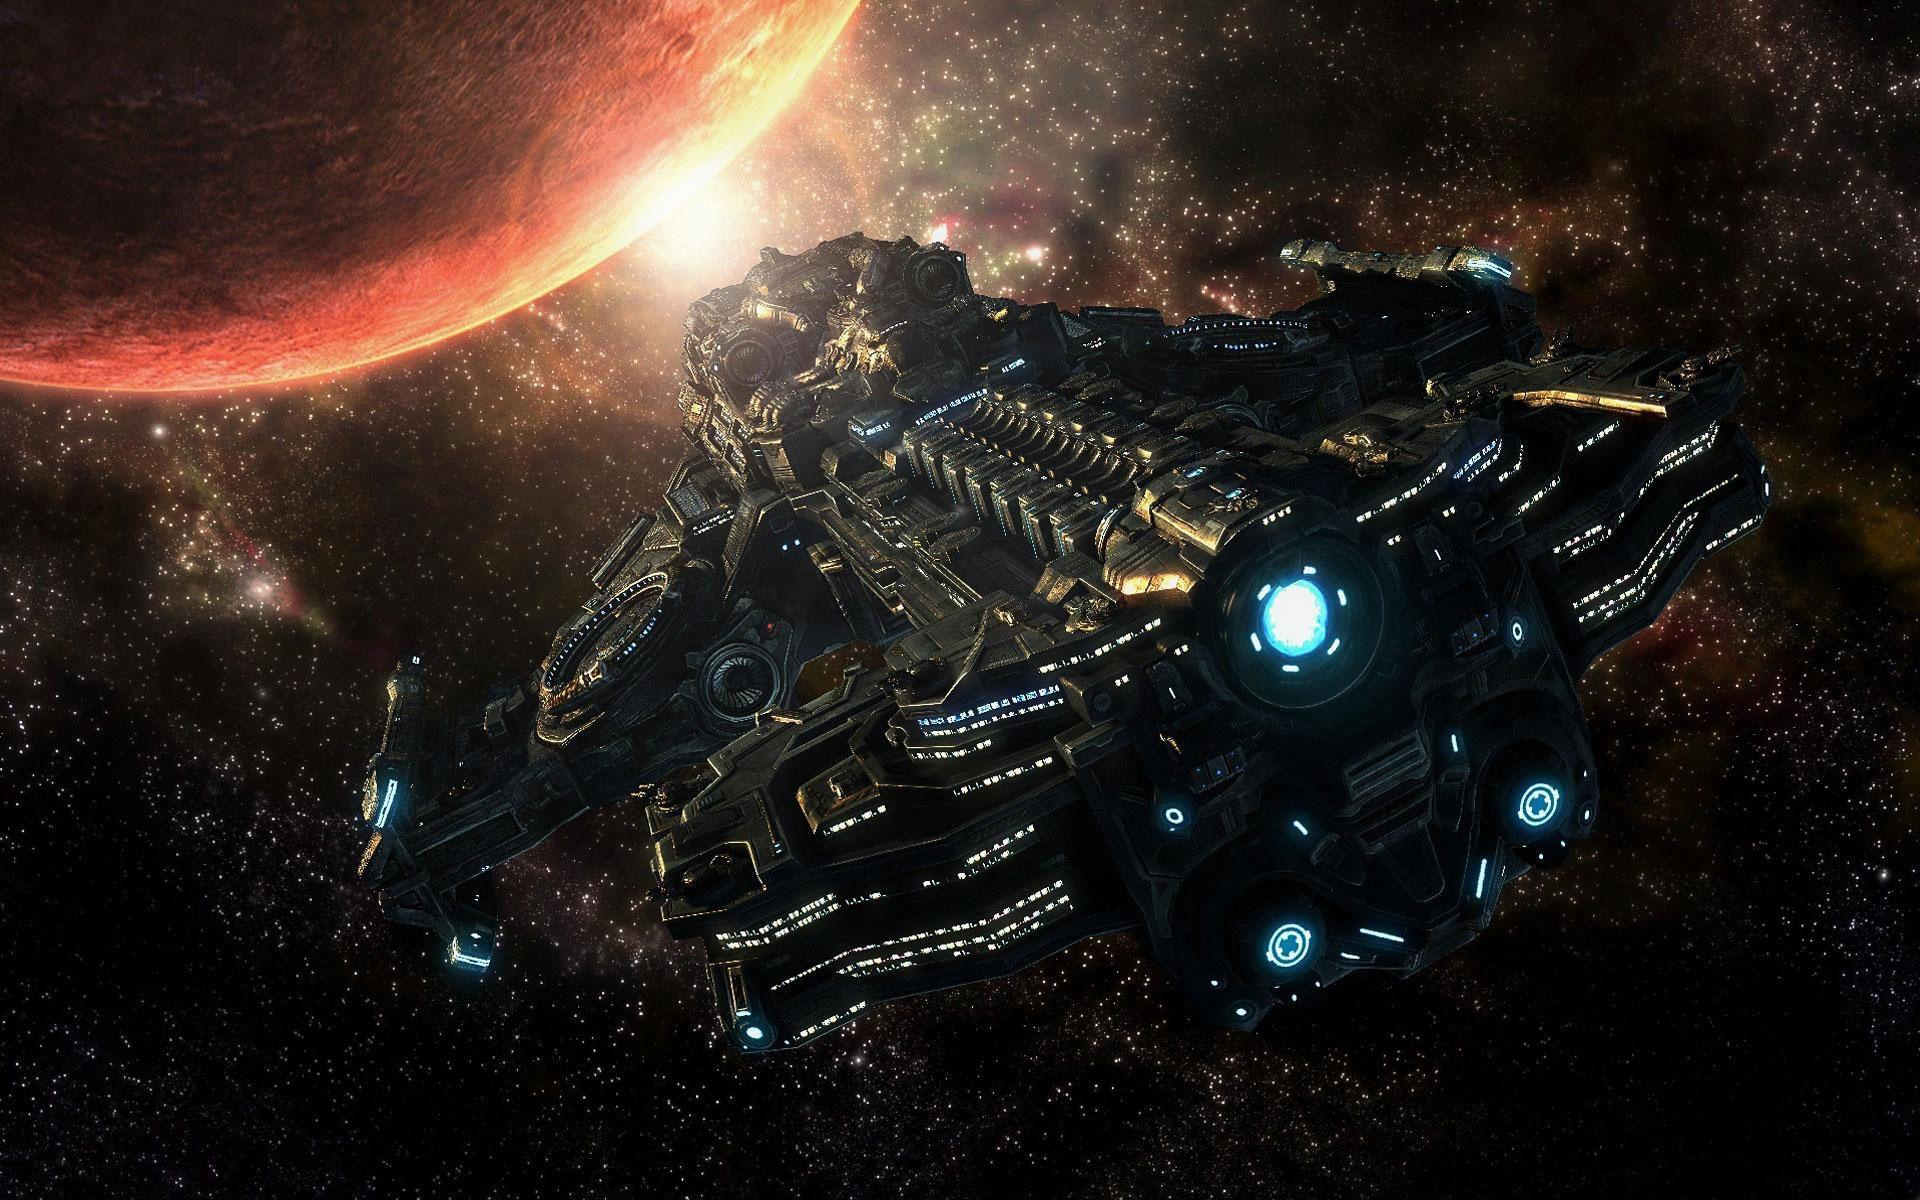 Space Ship Wallpapers 1920x1200